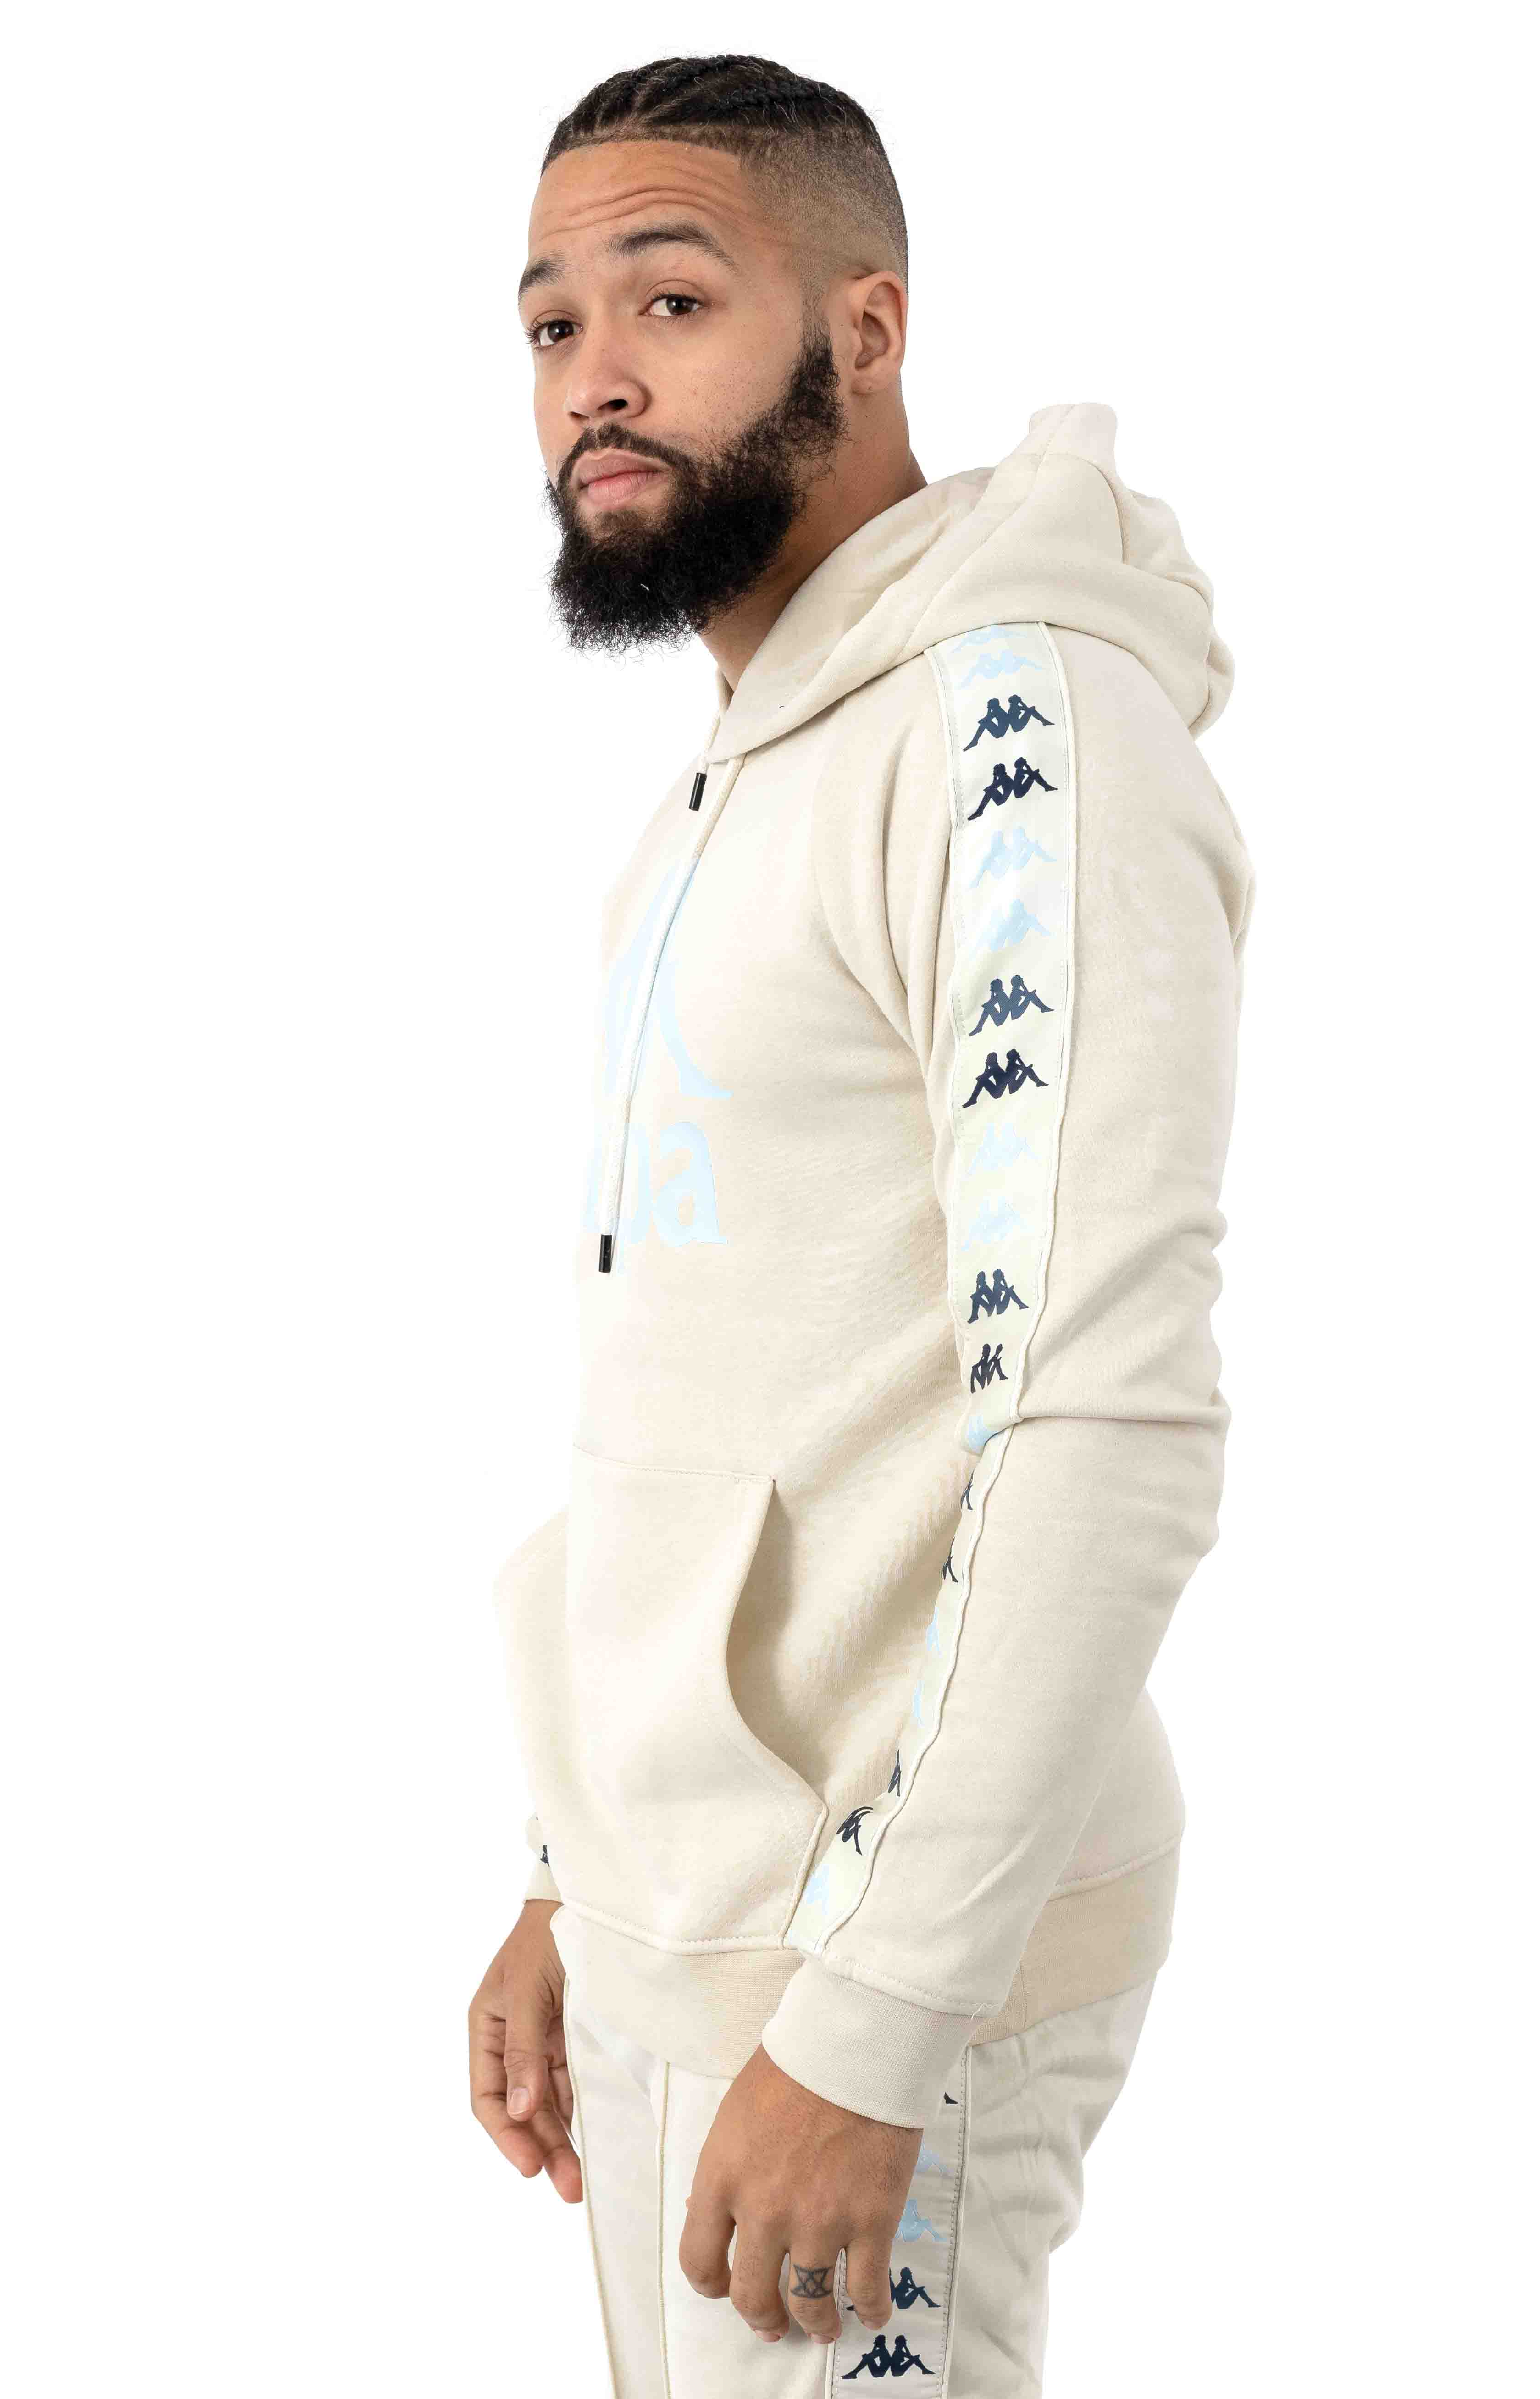 222 Banda Dinto Pullover Hoodie - White Egg/Illusion Blue 2